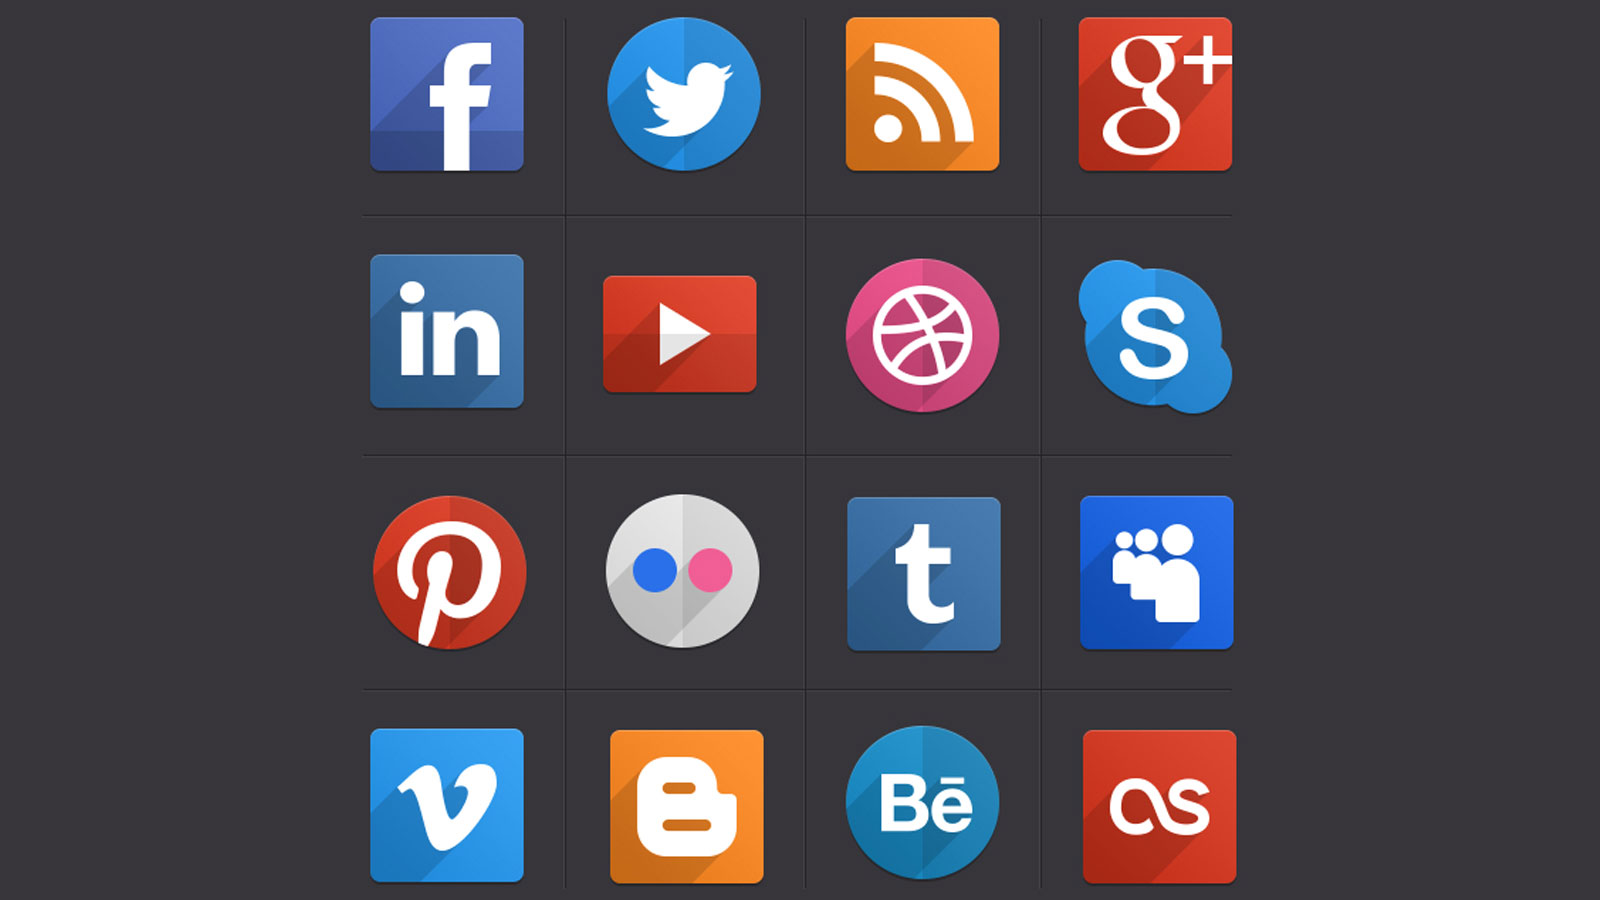 How to design a top-quality icons